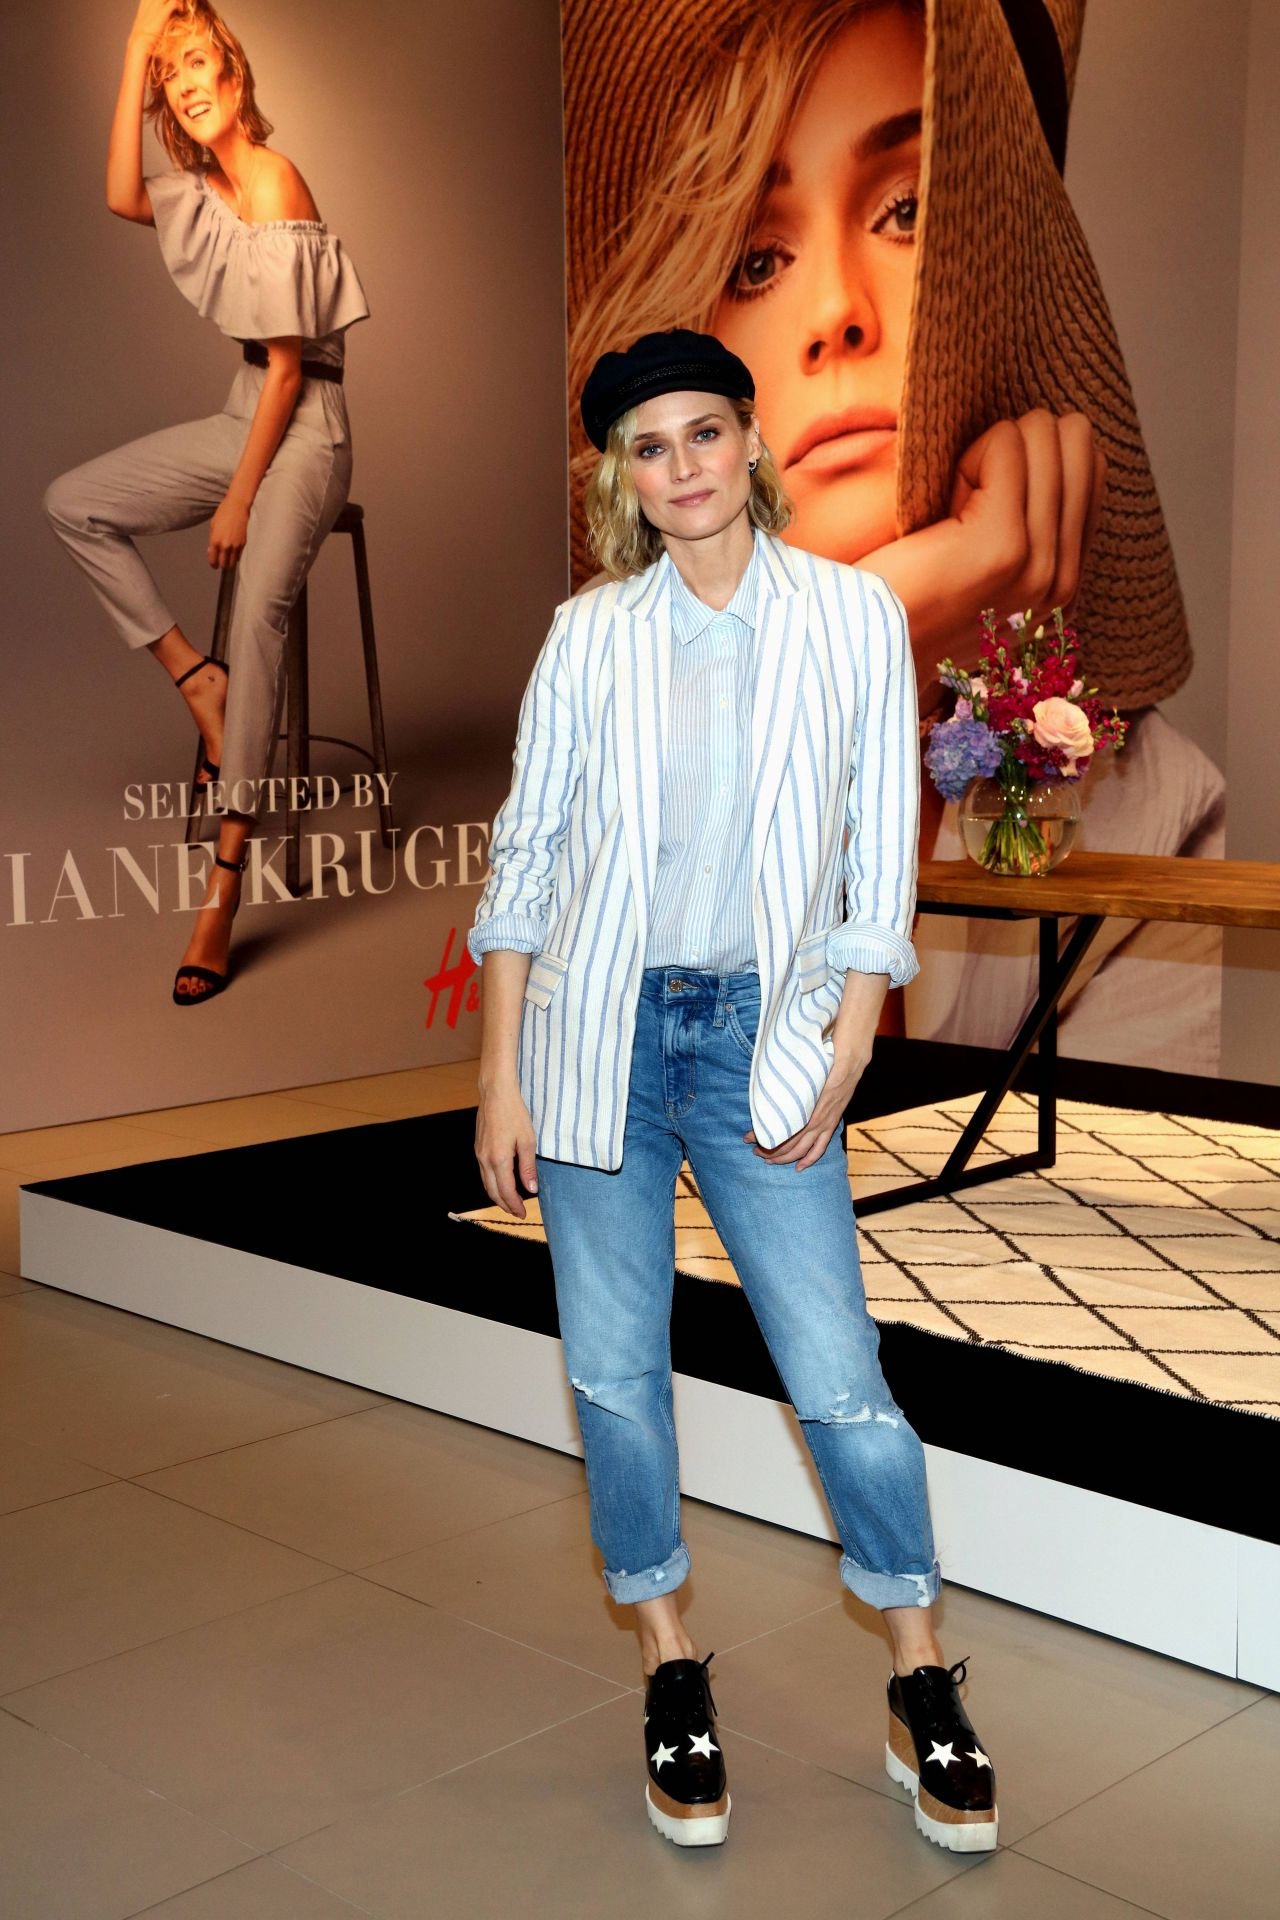 http://celebmafia.com/wp-content/uploads/2018/04/diane-kruger-launch-of-her-h-m-collection-in-berlin-04-25-2018-0.jpg